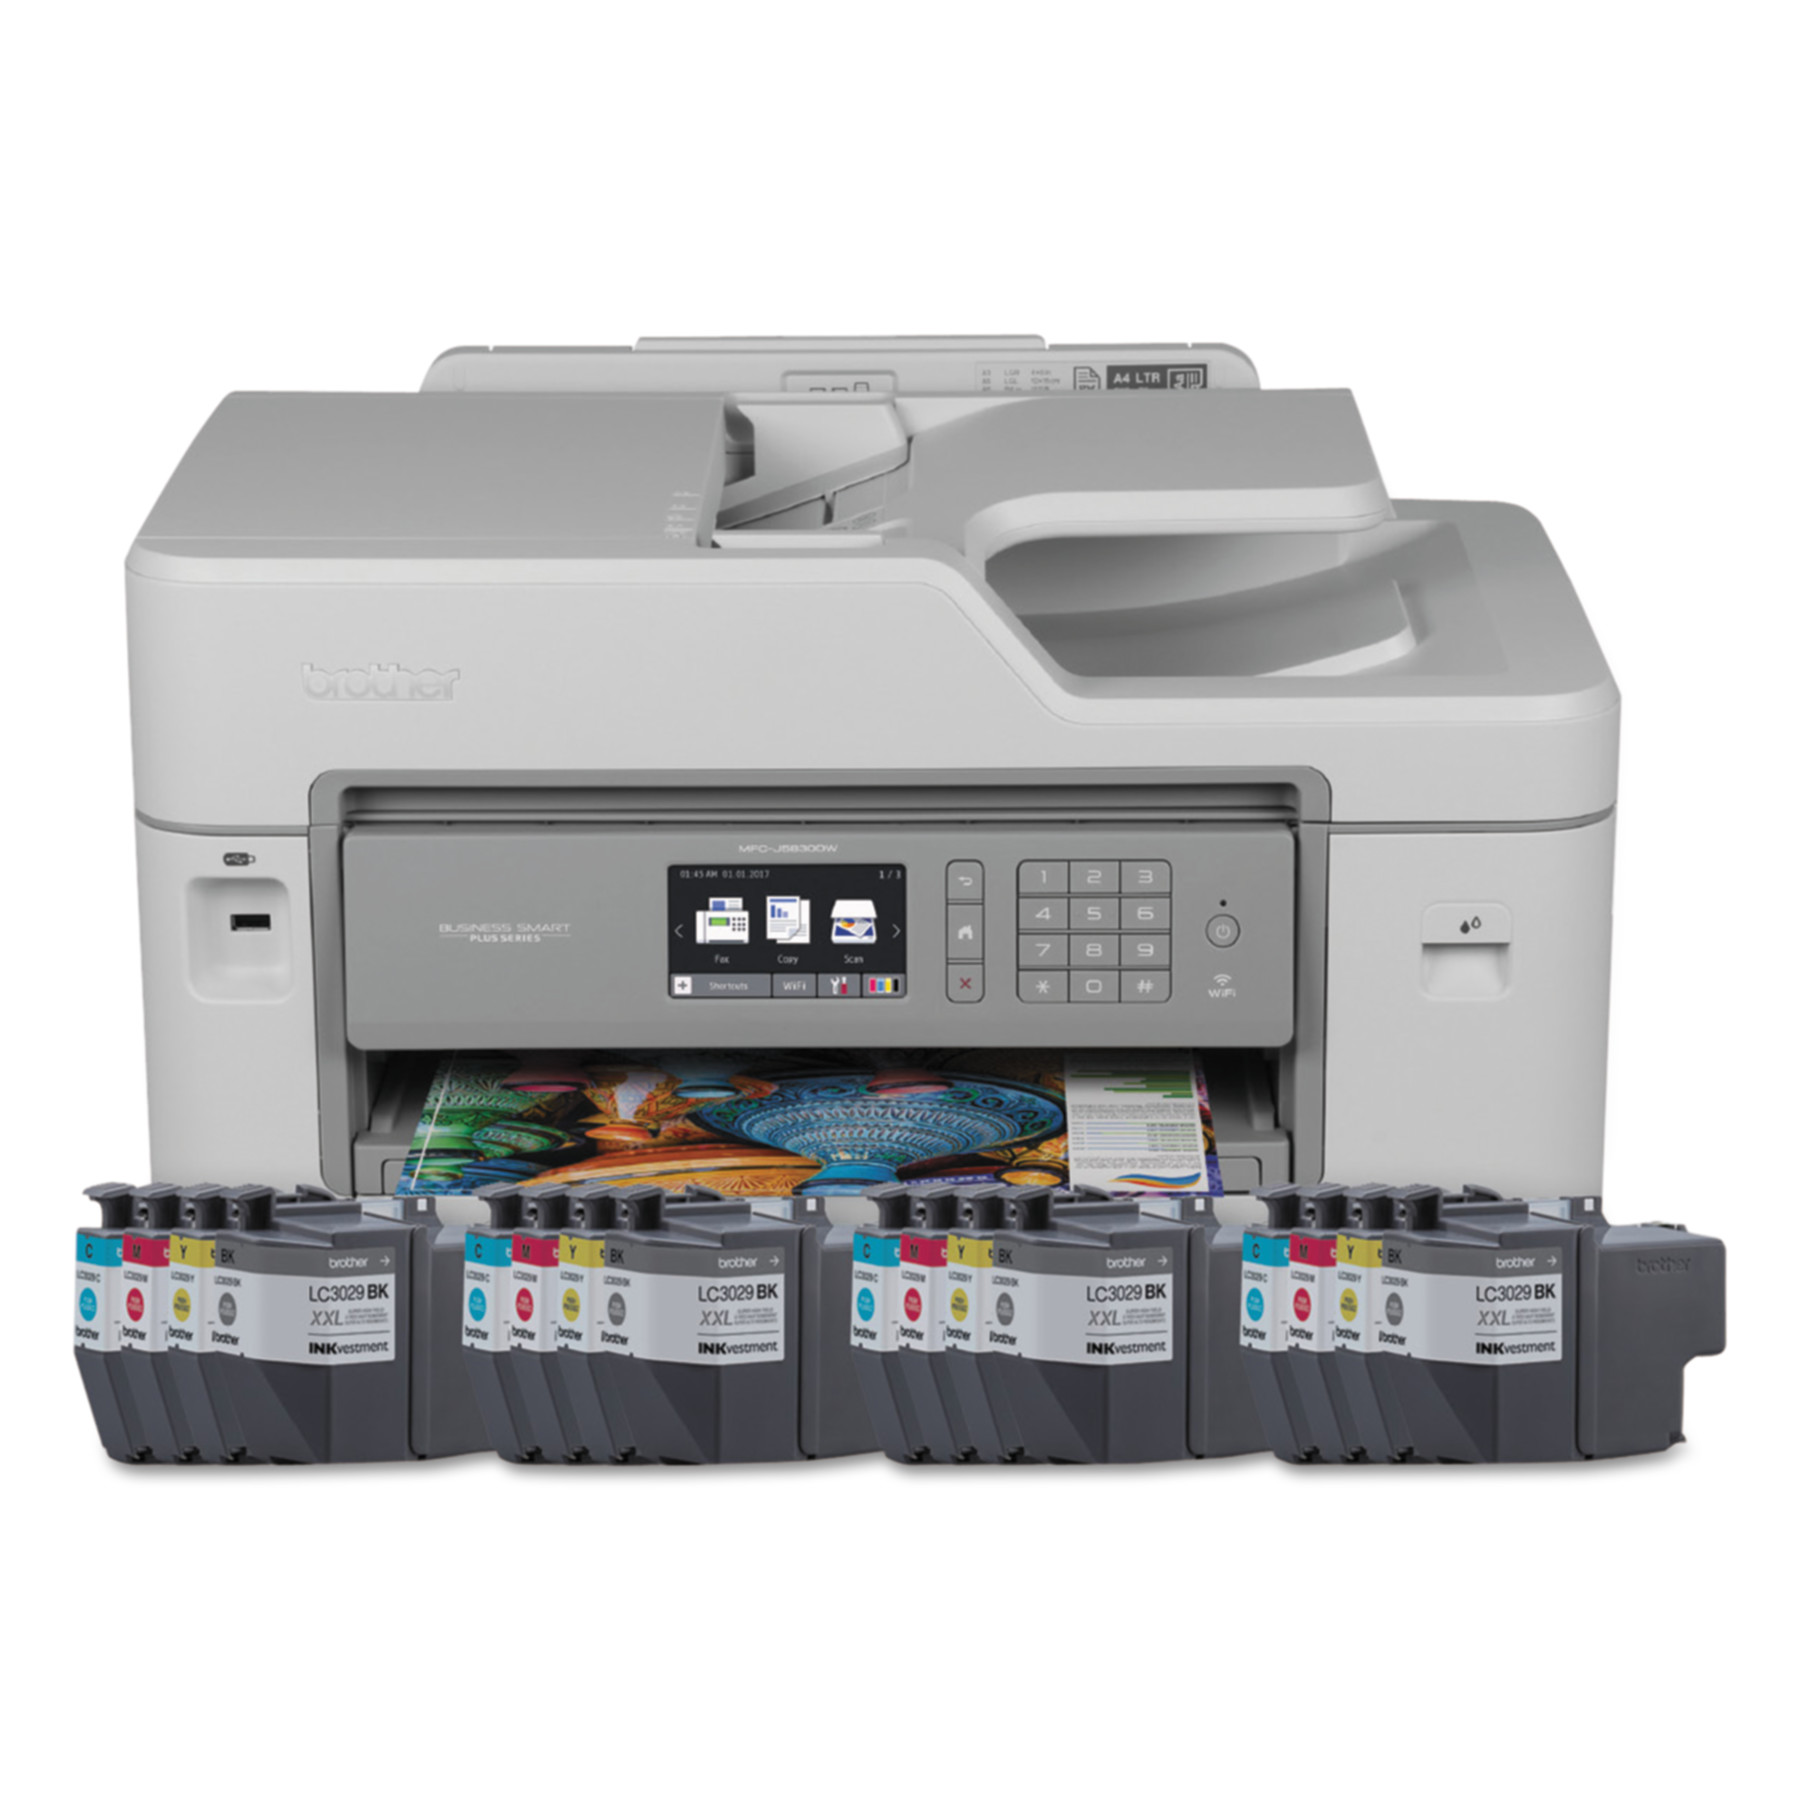 Brother Business Smart Plus MFC-J5830DWXL Color Inkjet All-in-One Printer Series